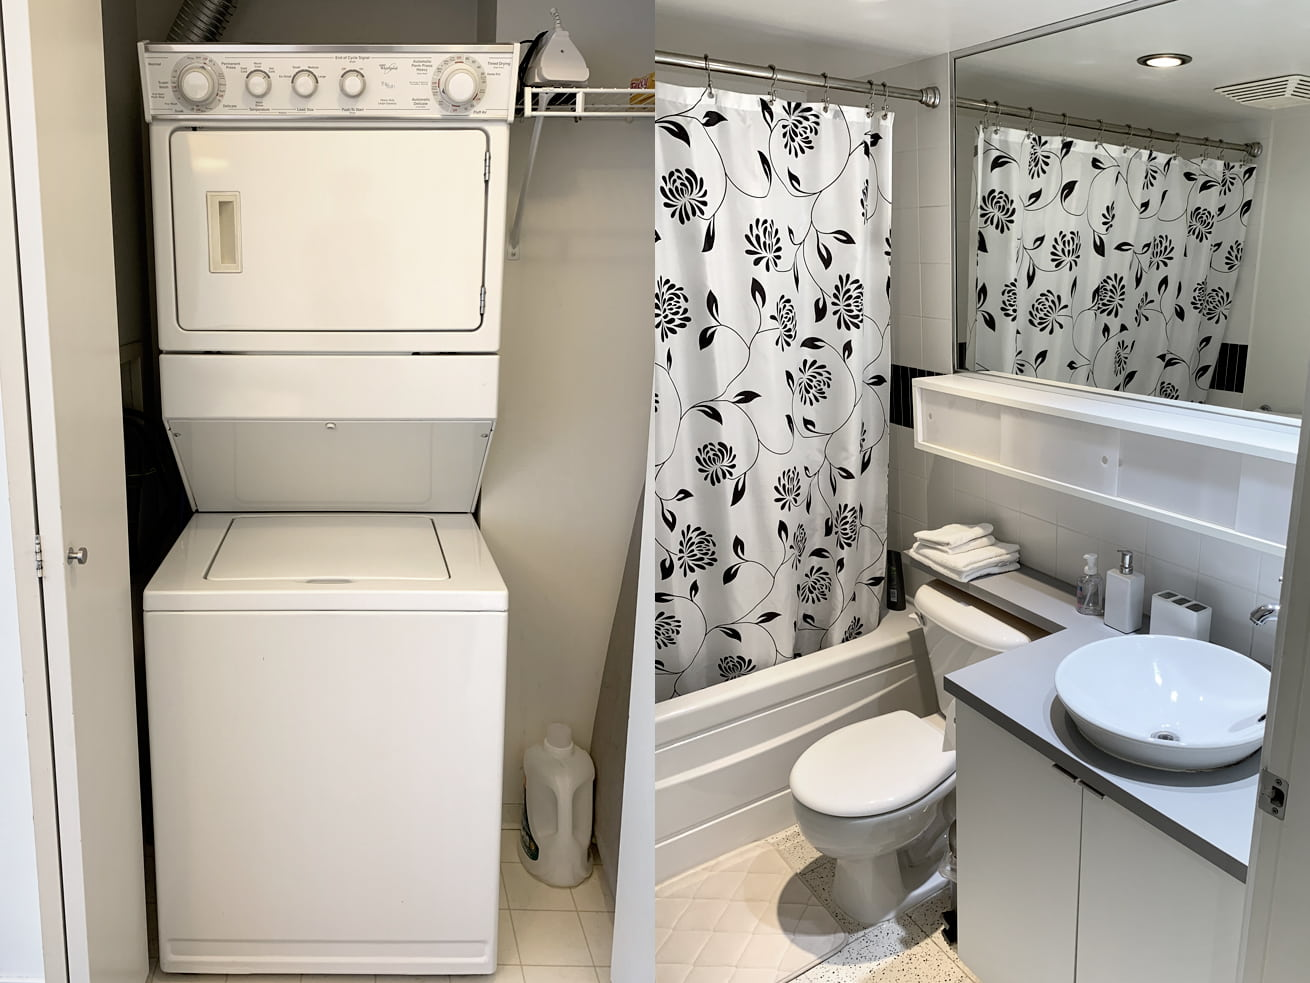 Vancouver downtown apartments max one bedroom den washer dryer bathroom